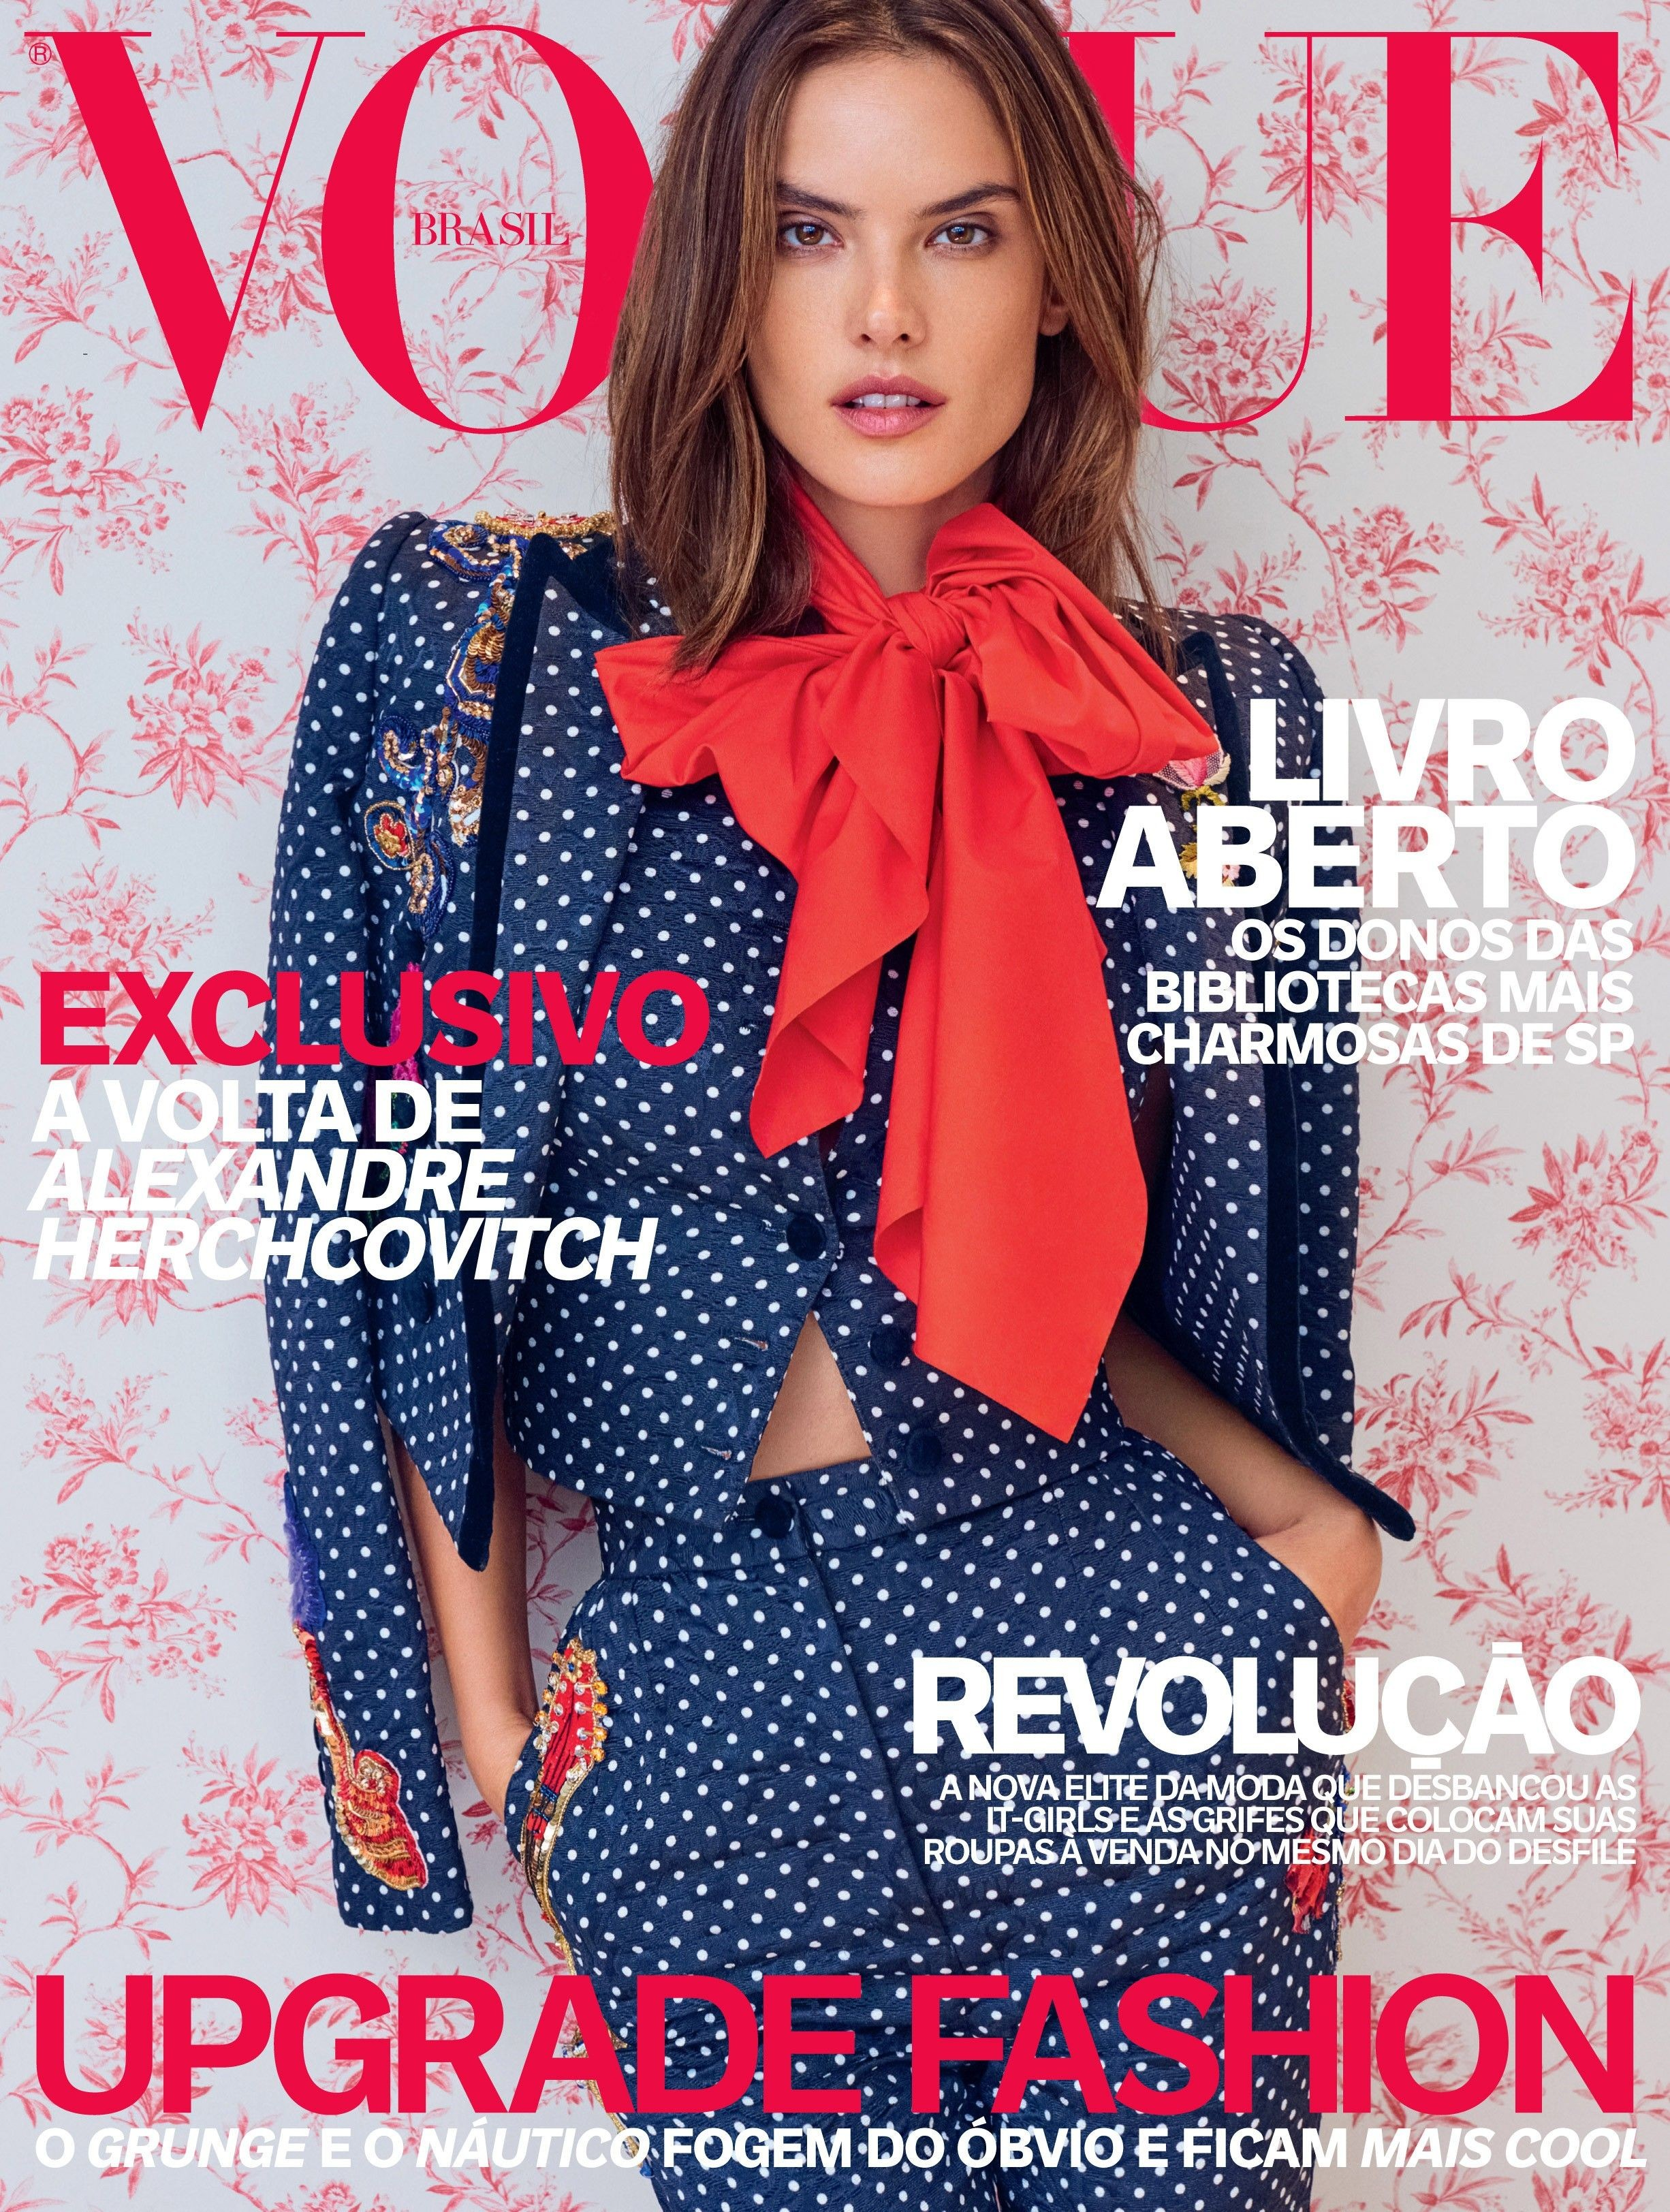 Alessandra Ambrosio on the cover of the April issue of 2016 (picture: Mariano Vivanco)